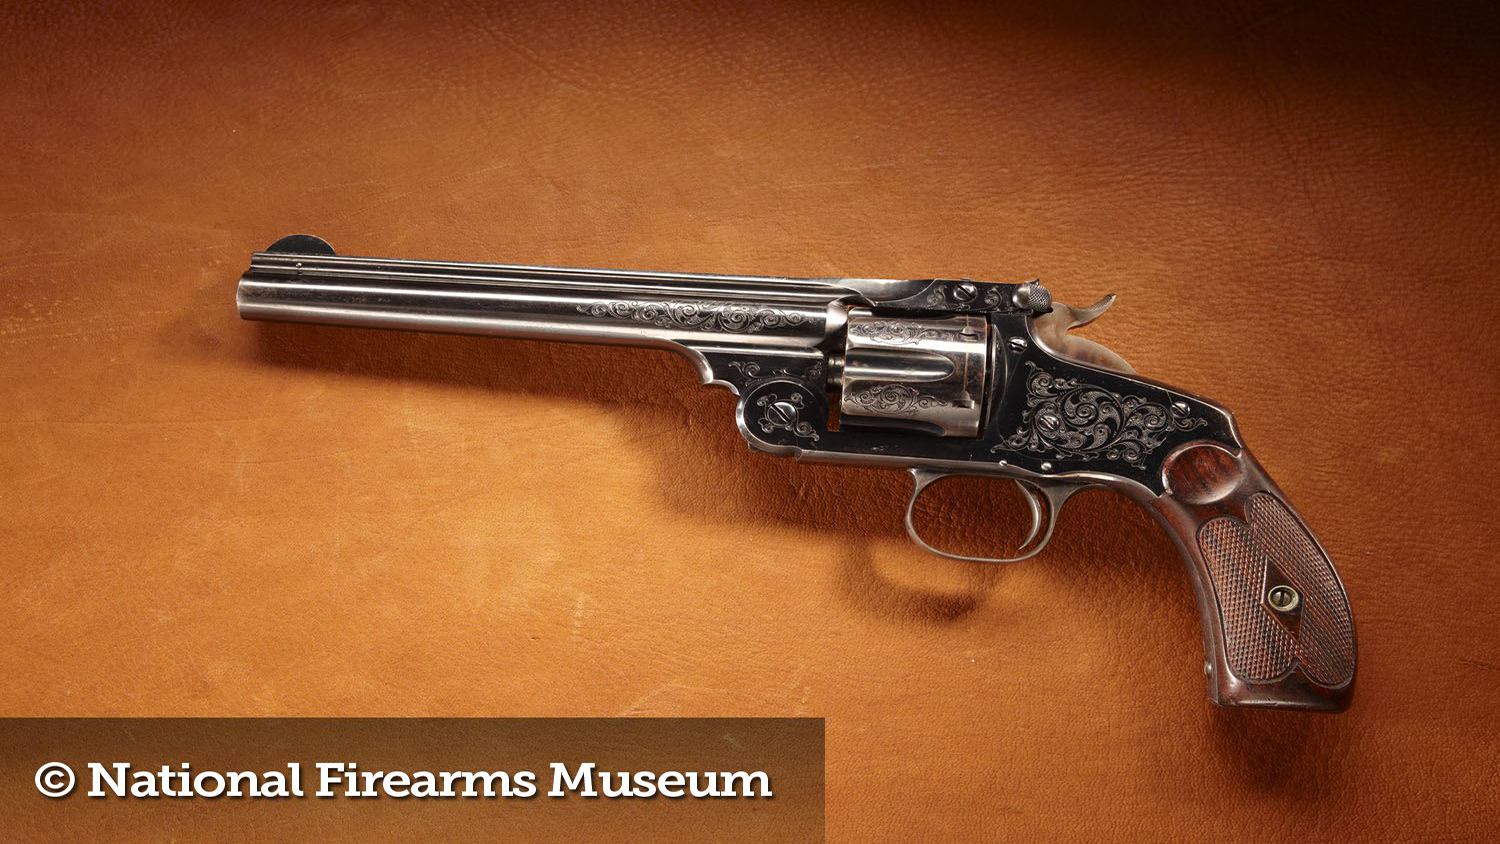 Gun of the Month: Theodore Roosevelt's Smith & Wesson New Model No. 3 Revolver